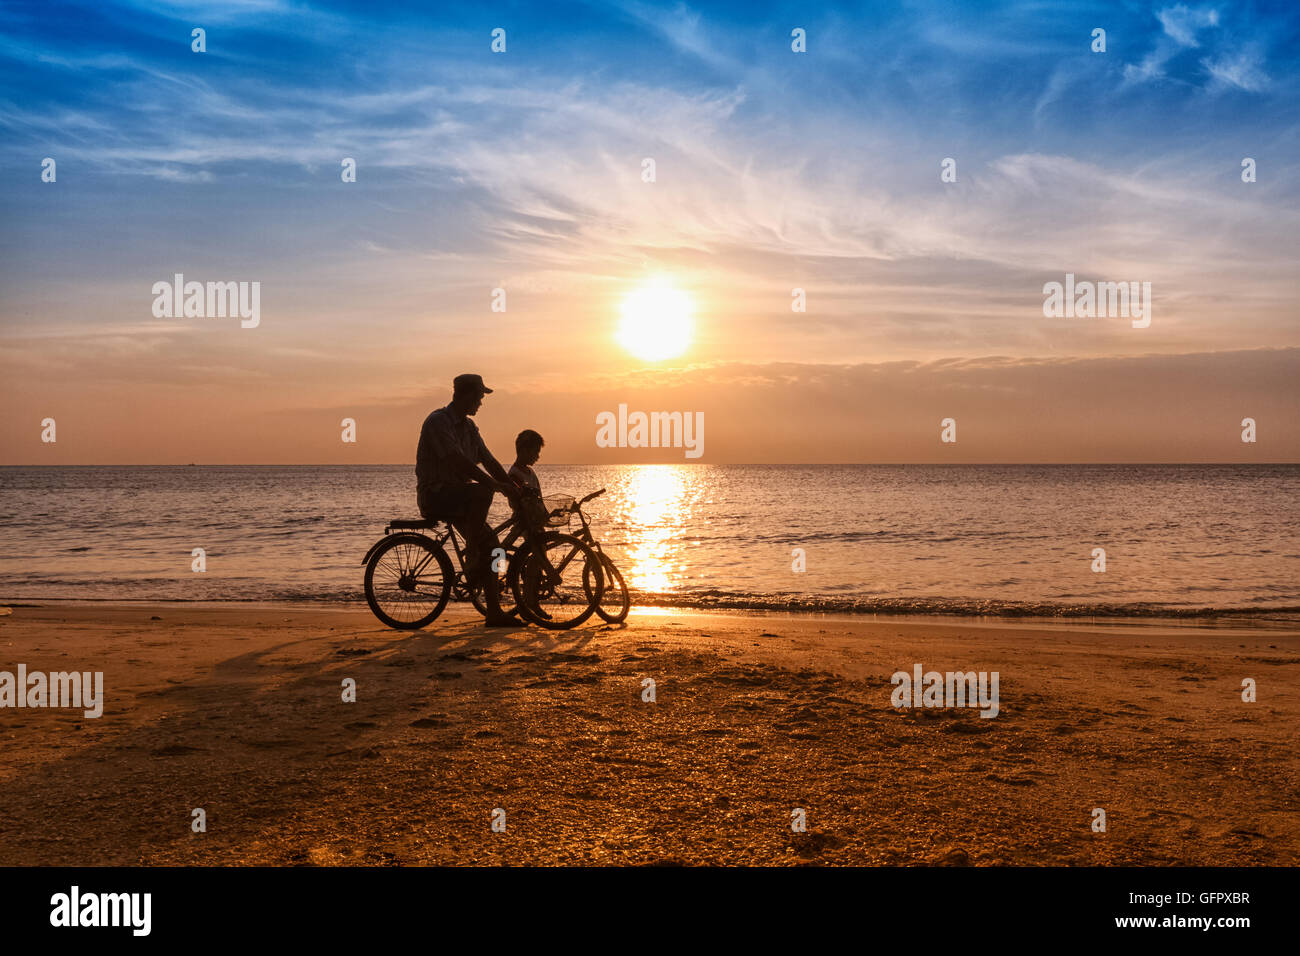 Biker family silhouette father and son on the beach in the sun rise - Stock Image